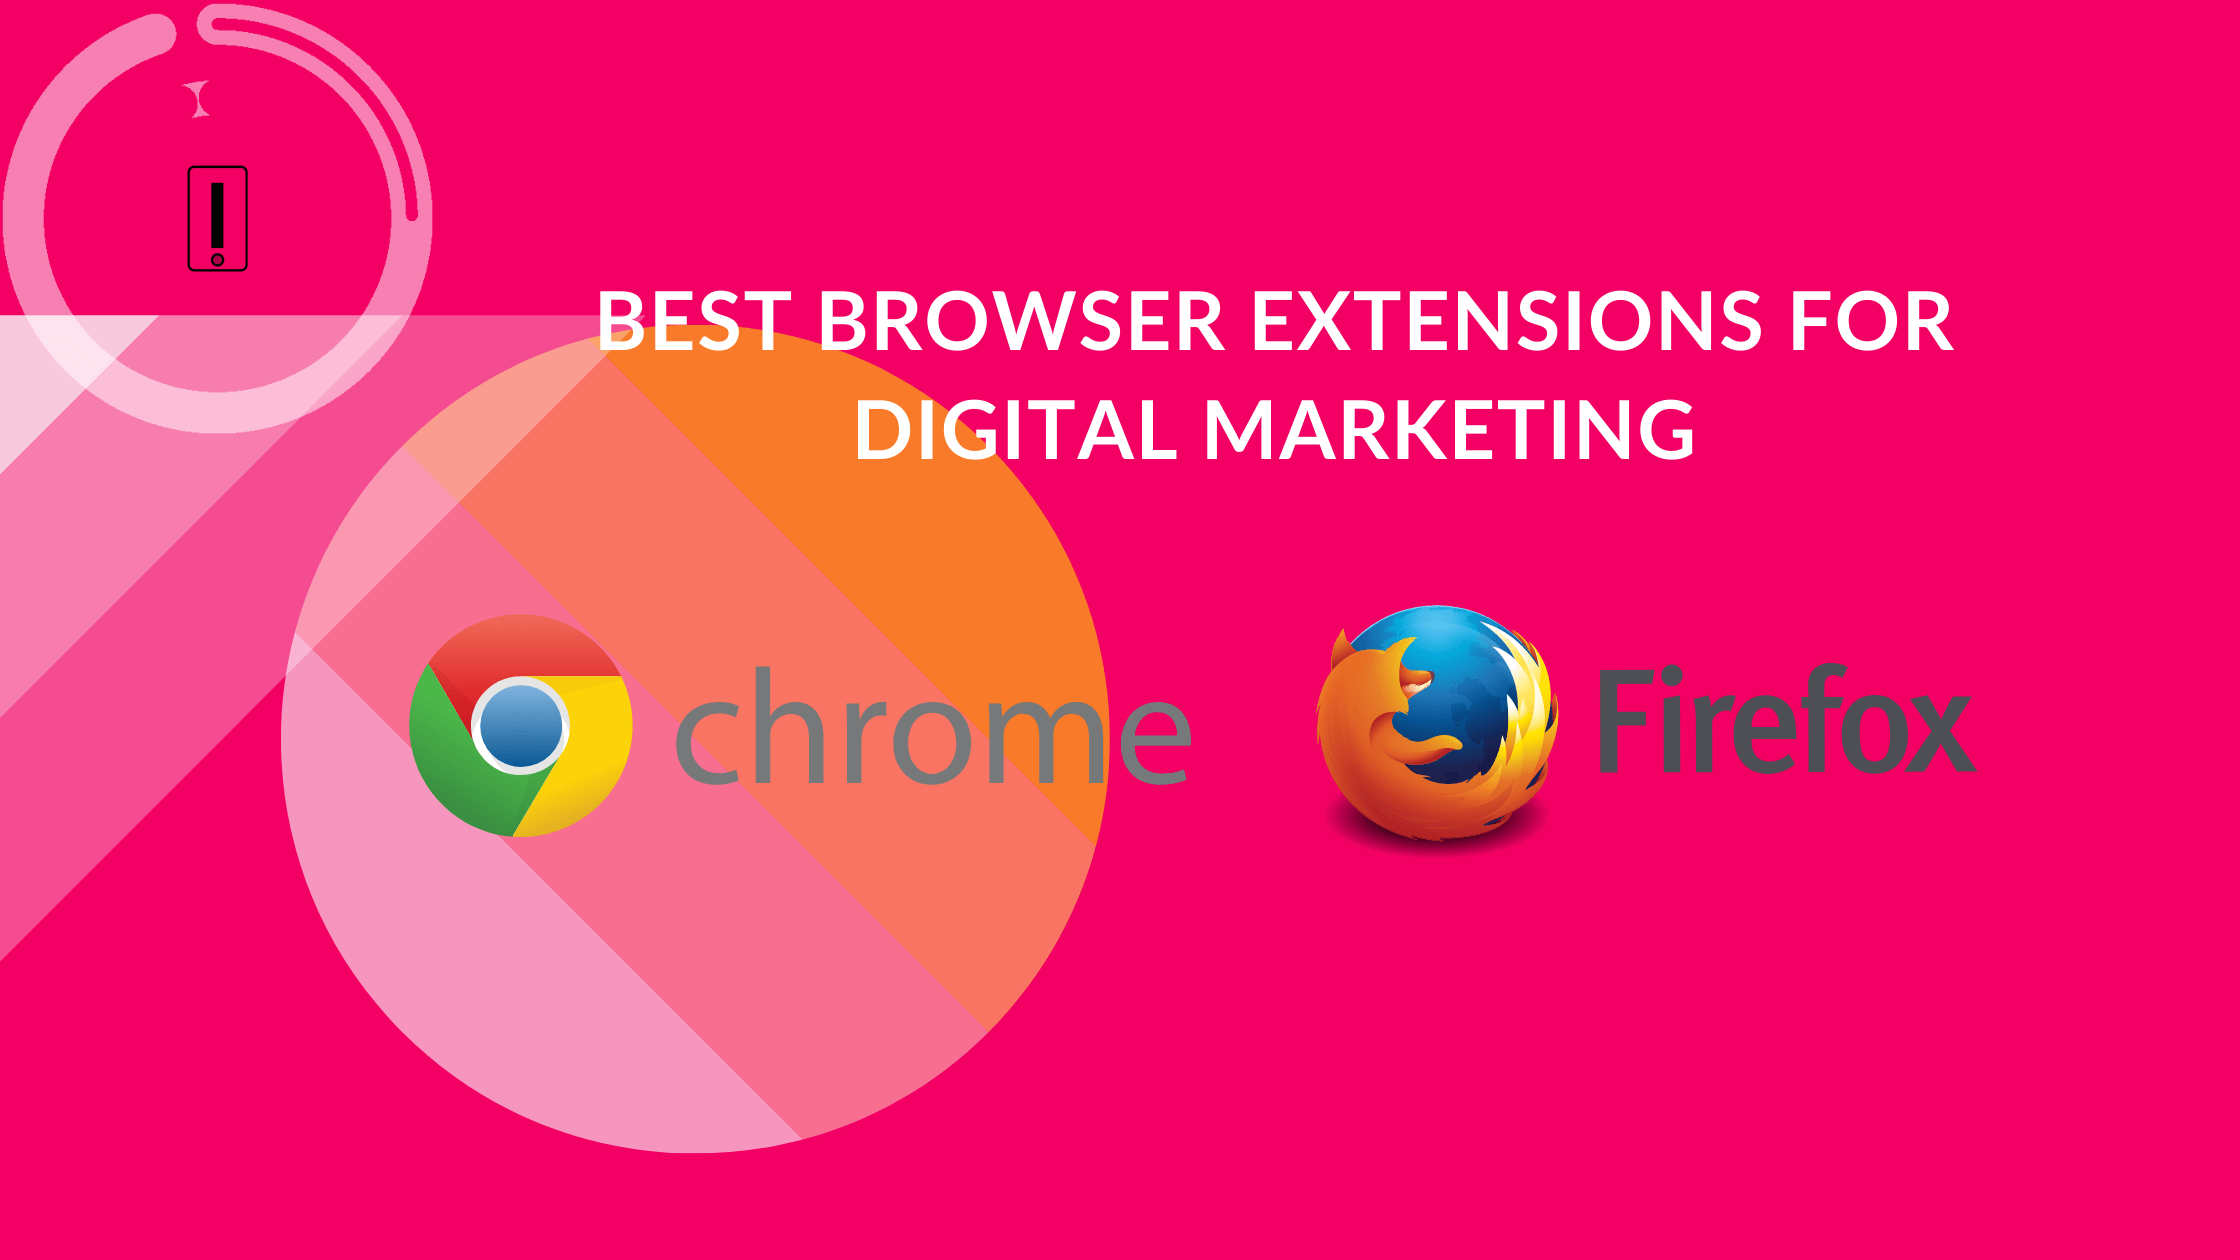 Must have browser extensions for Digital Marketing